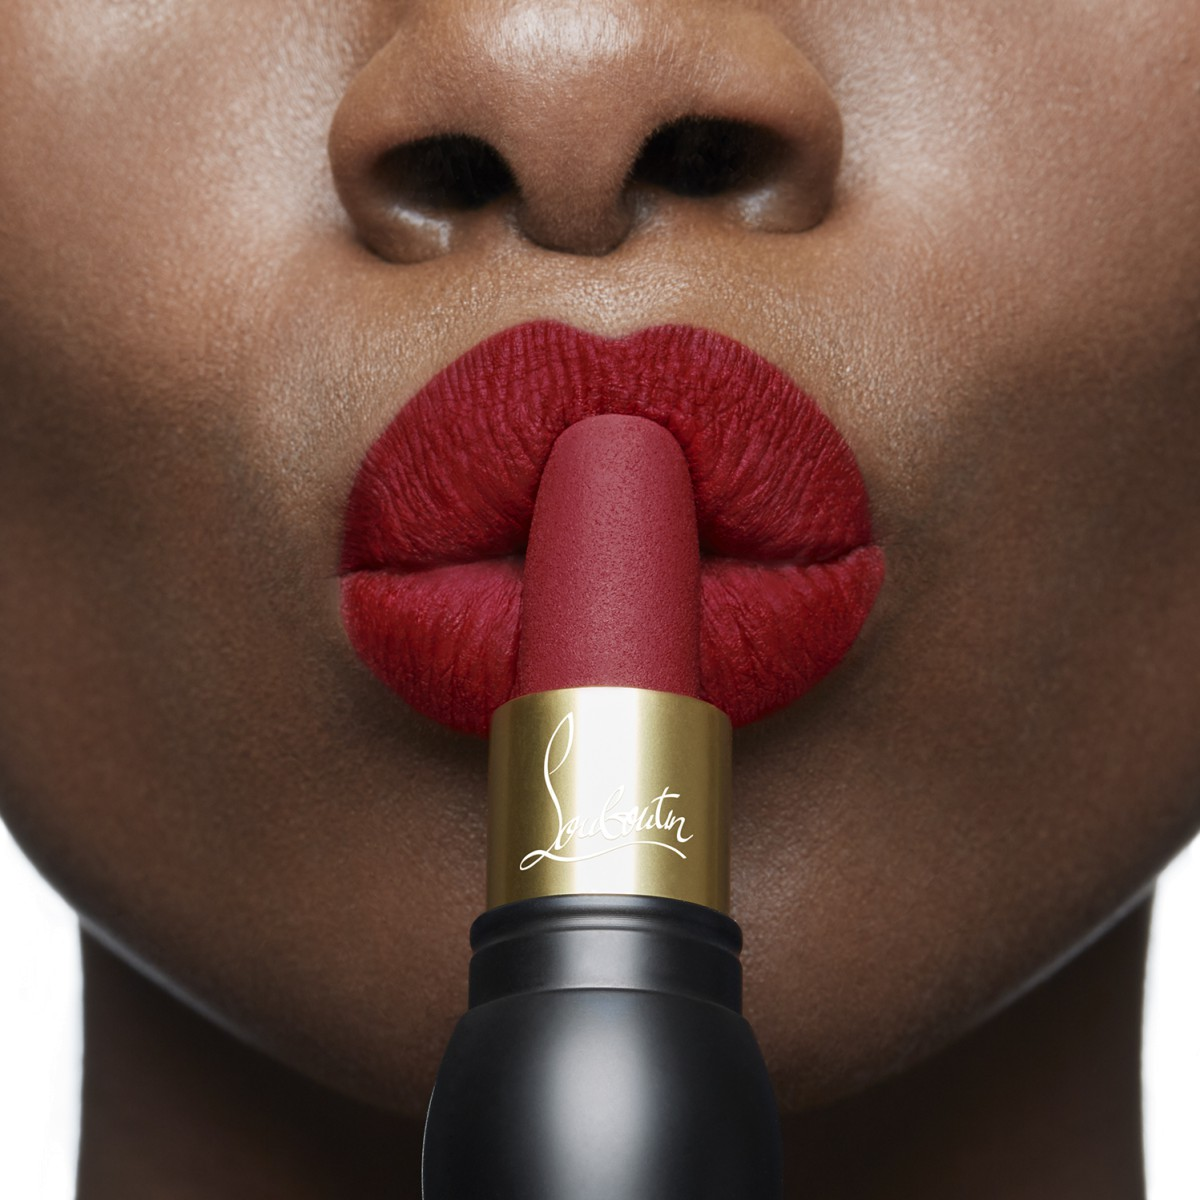 Woman Beauty - Rouge Louboutin Velvet Matte - Christian Louboutin